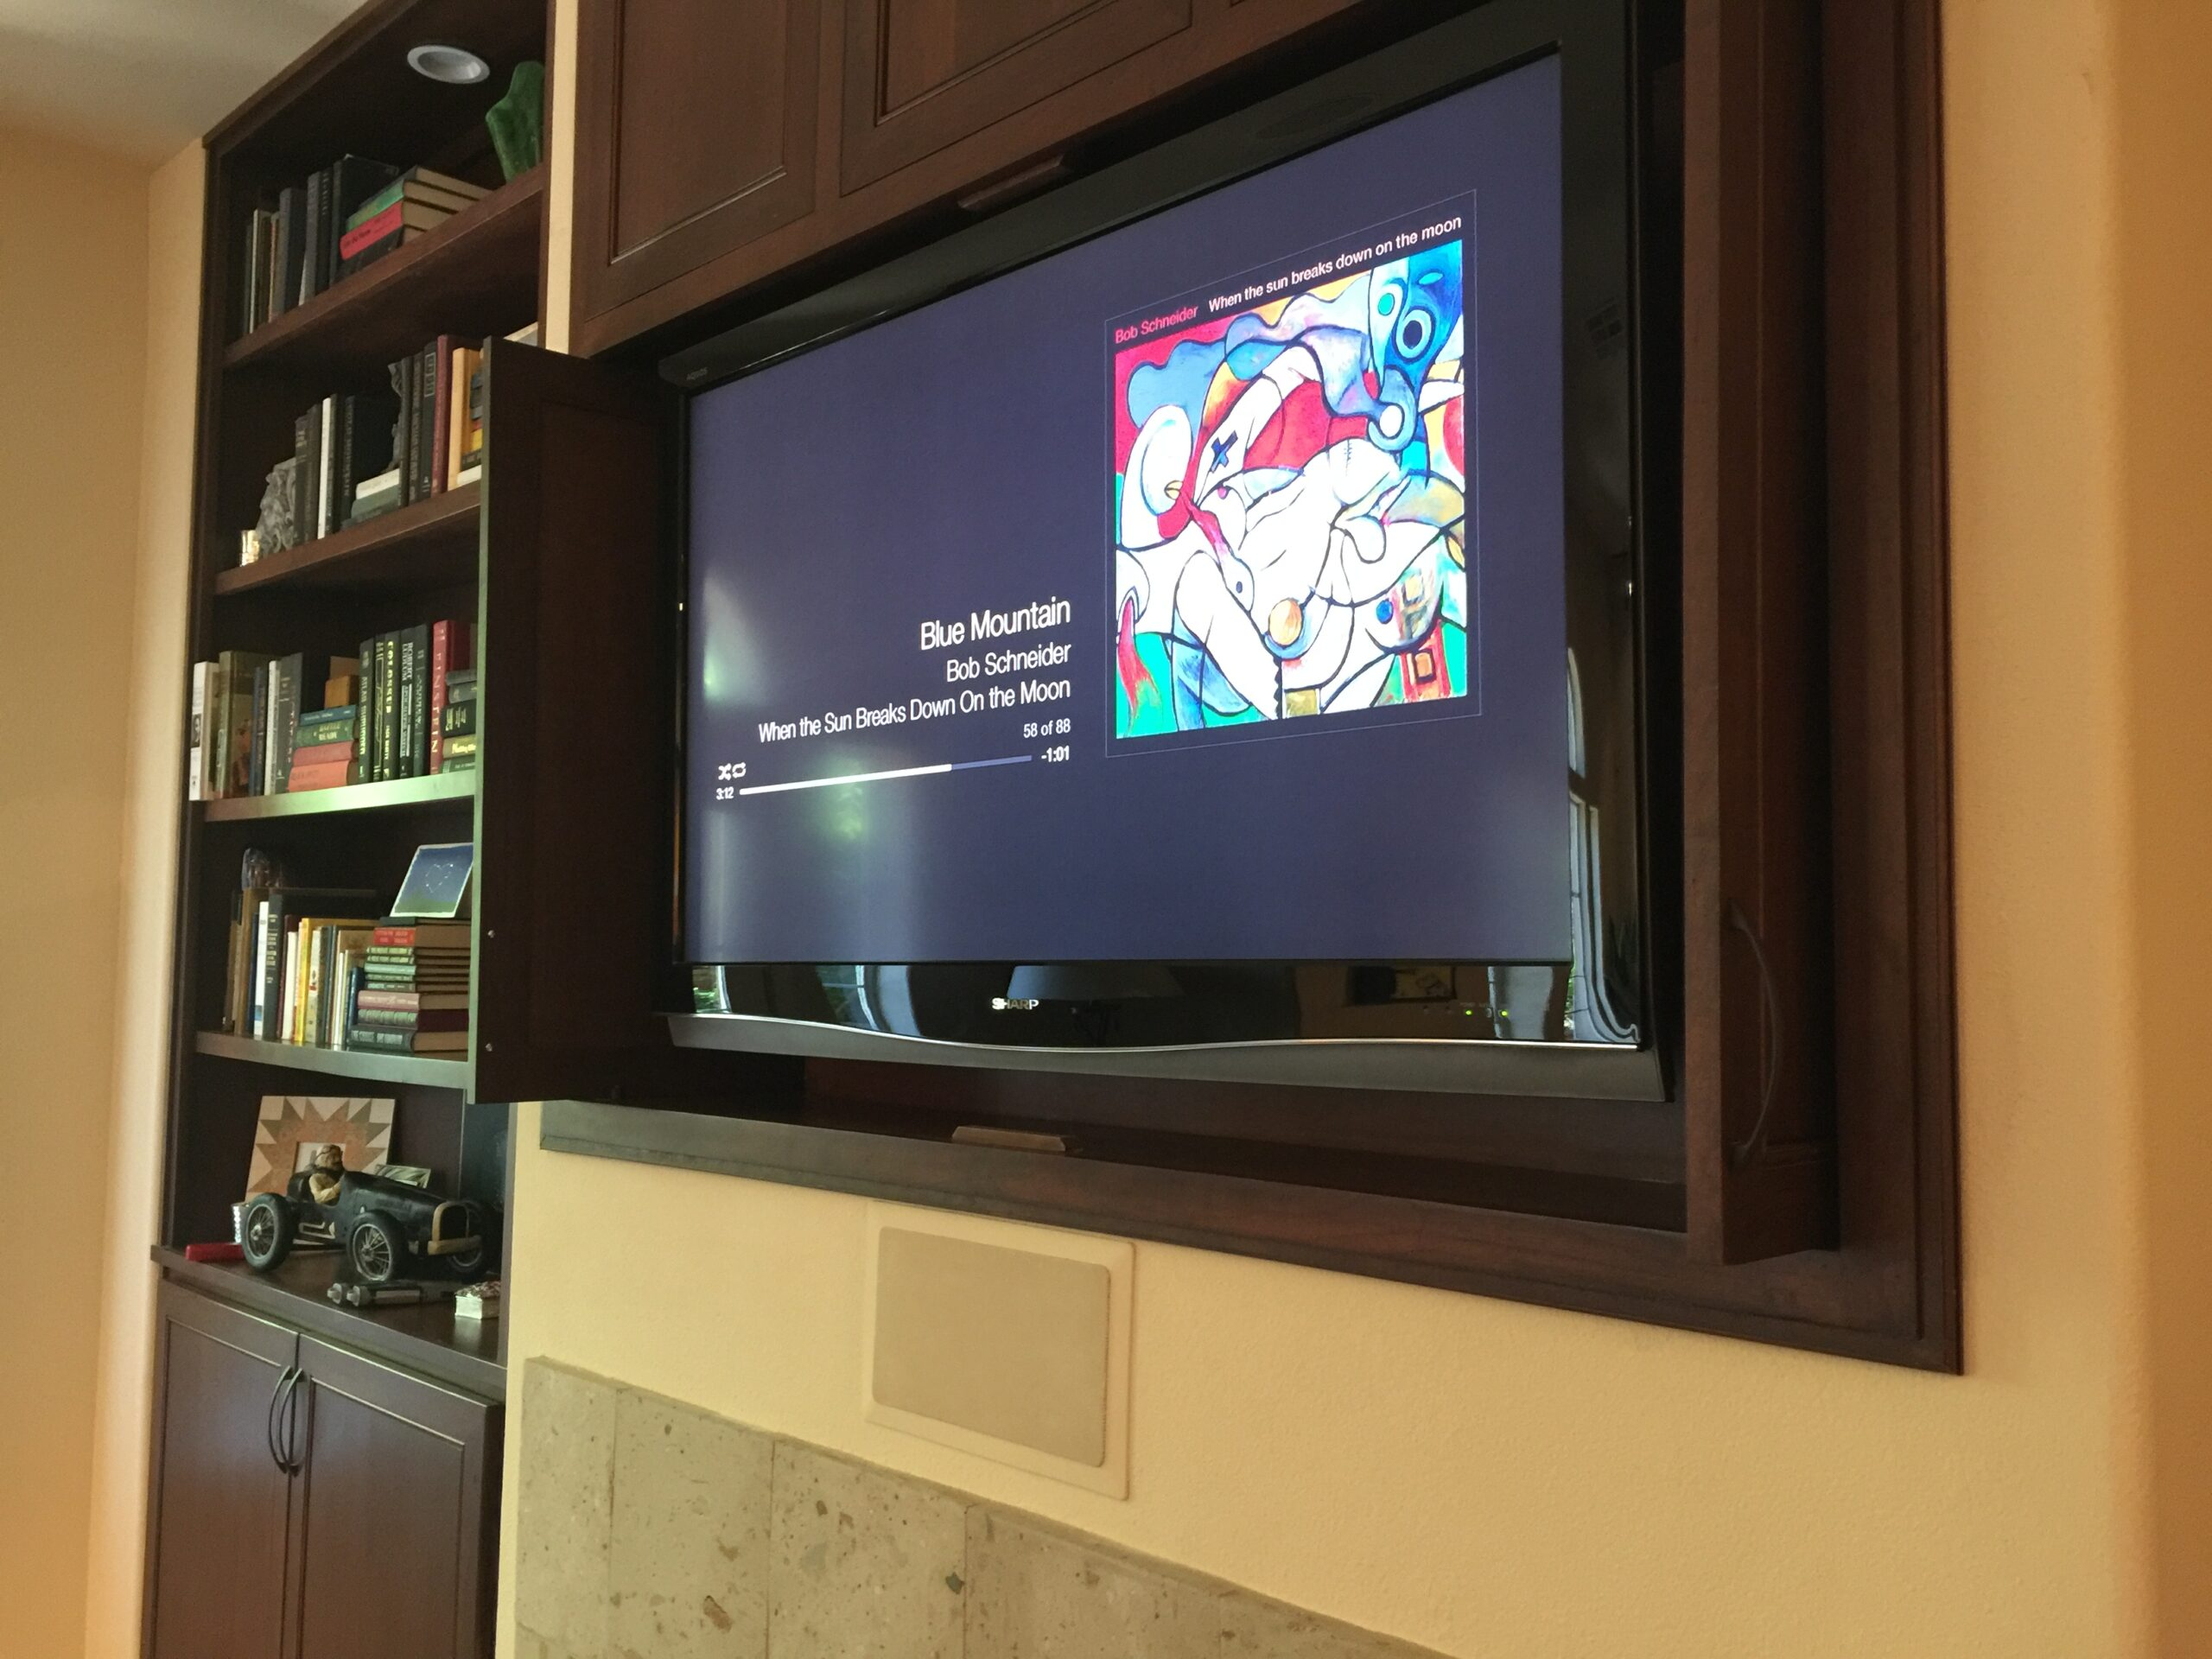 Fireplace mounted TV and sound system